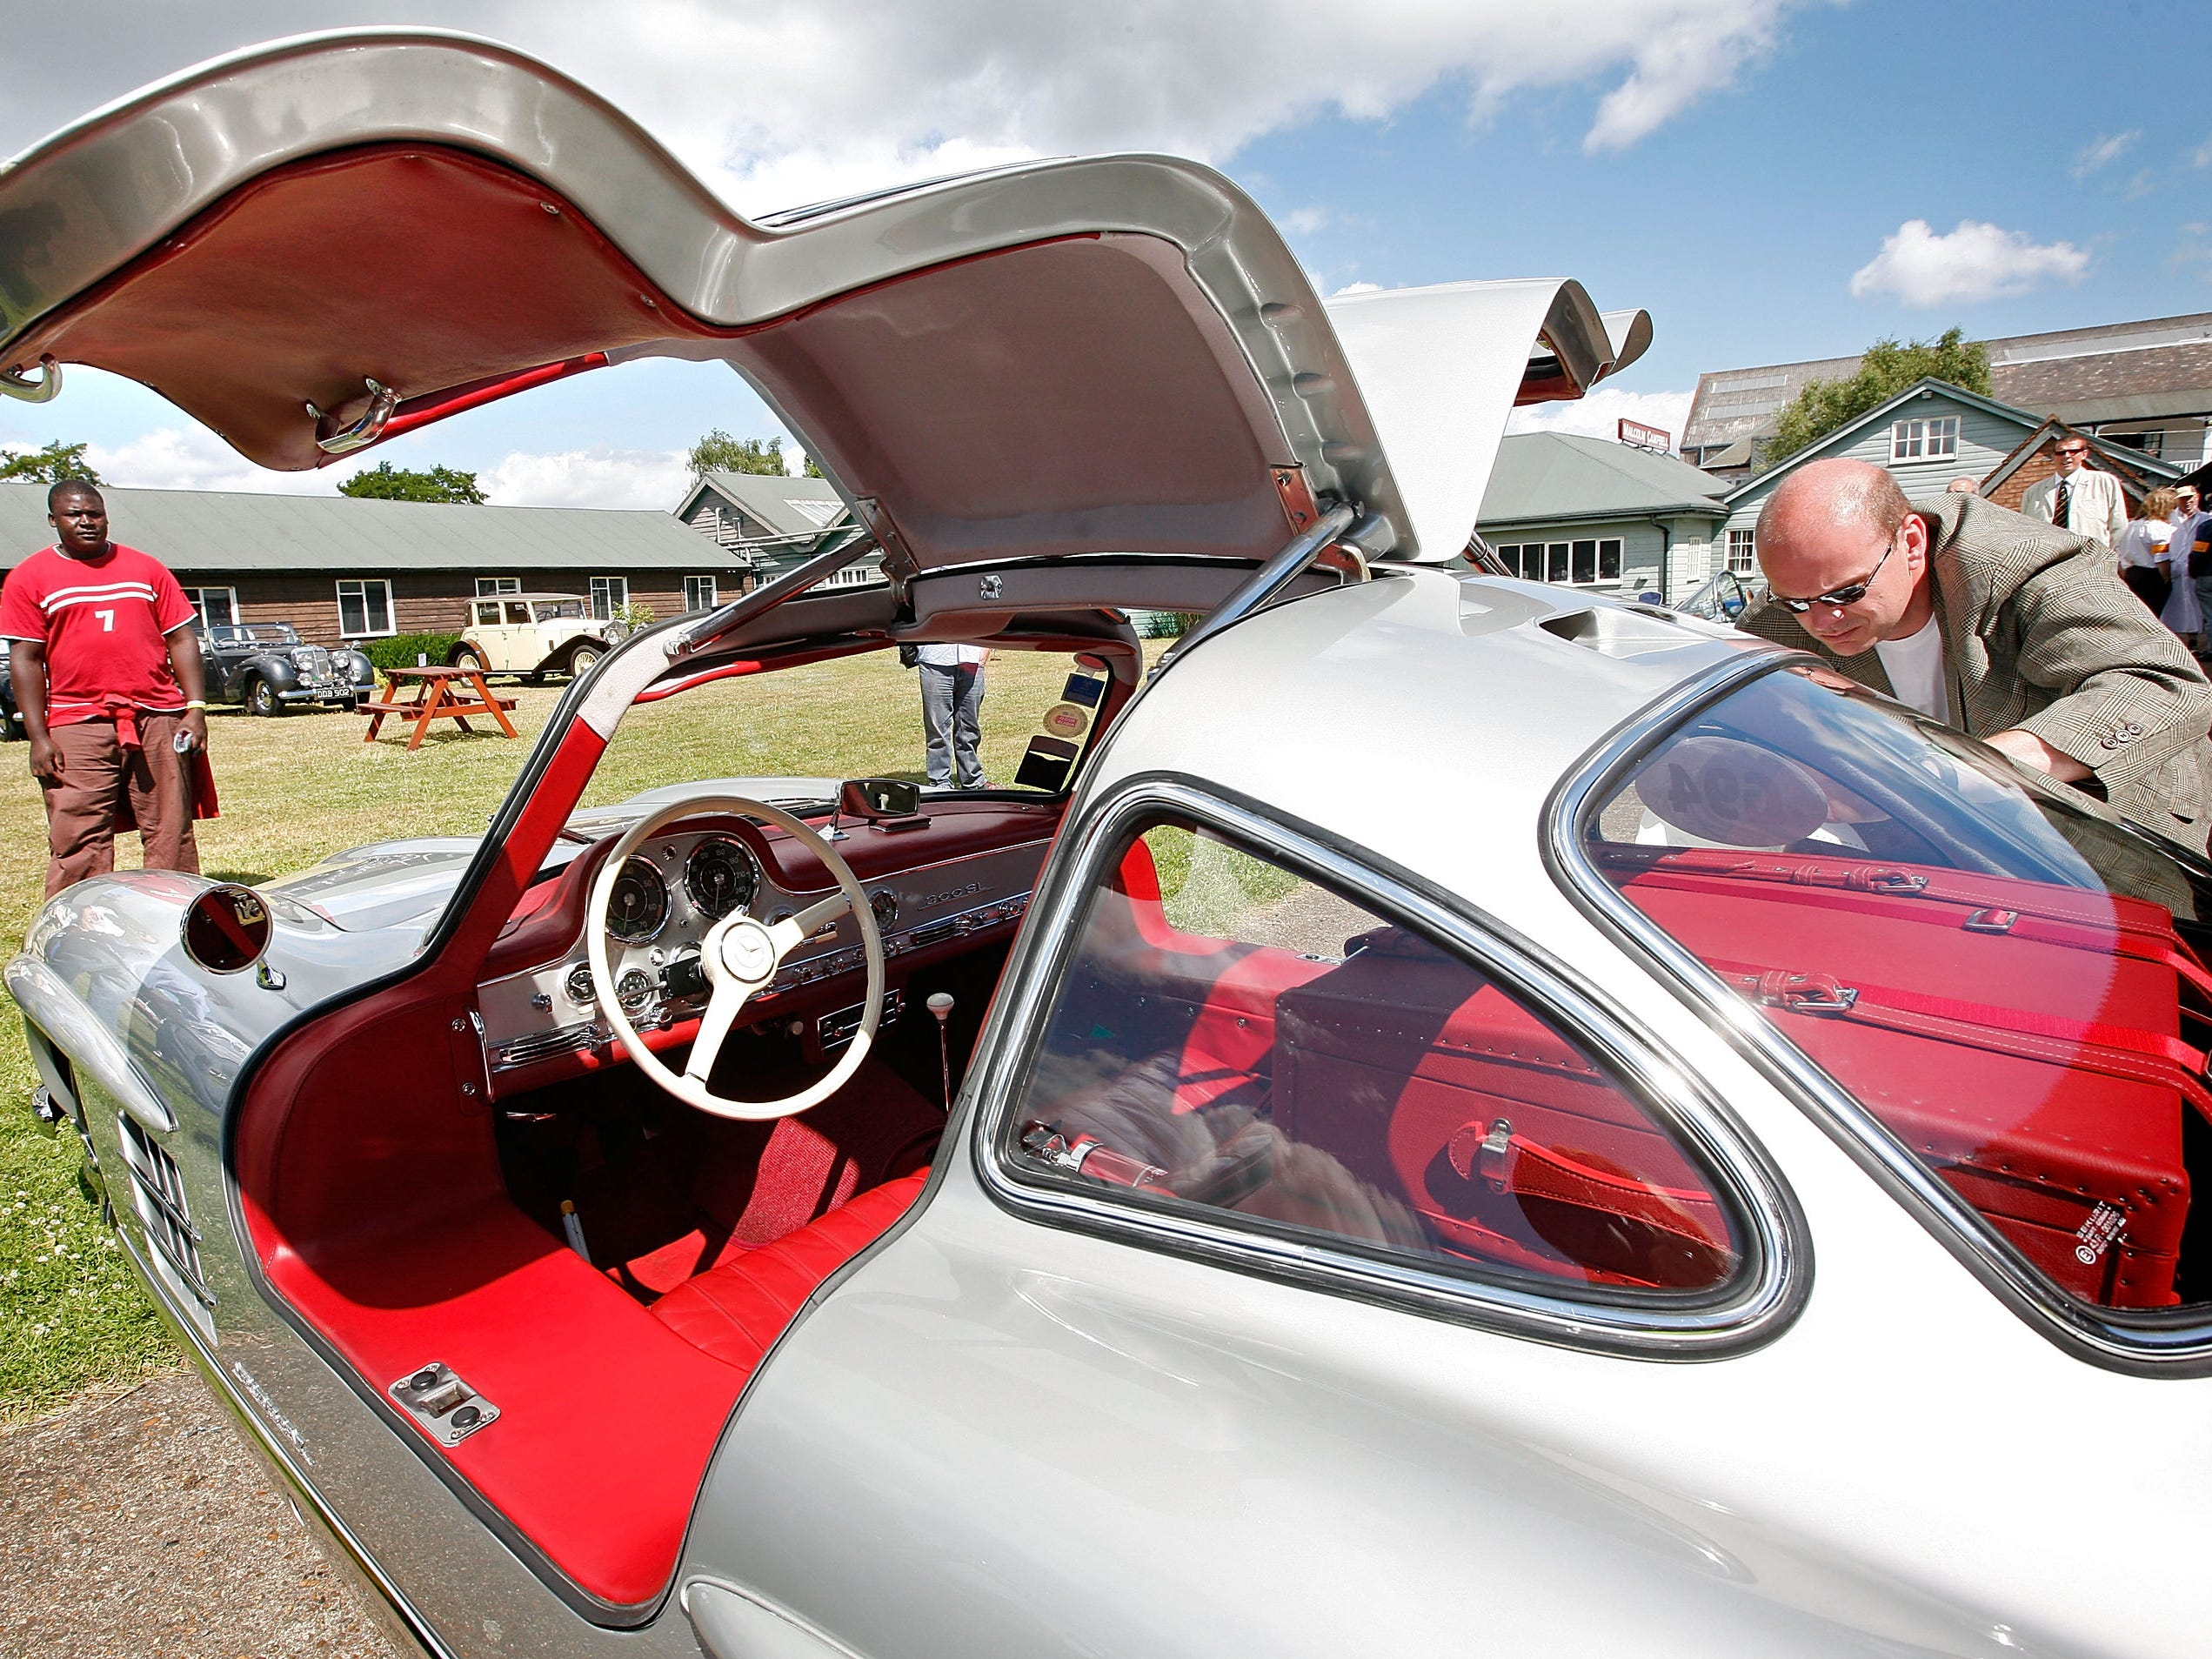 A man places the racing number on a 1955 Mercedes-Benz 300SL Gullwing at the Brooklands Motoring Festival 2008, 'The Double Twelve' on June 28, 2008, in Weybridge, England.